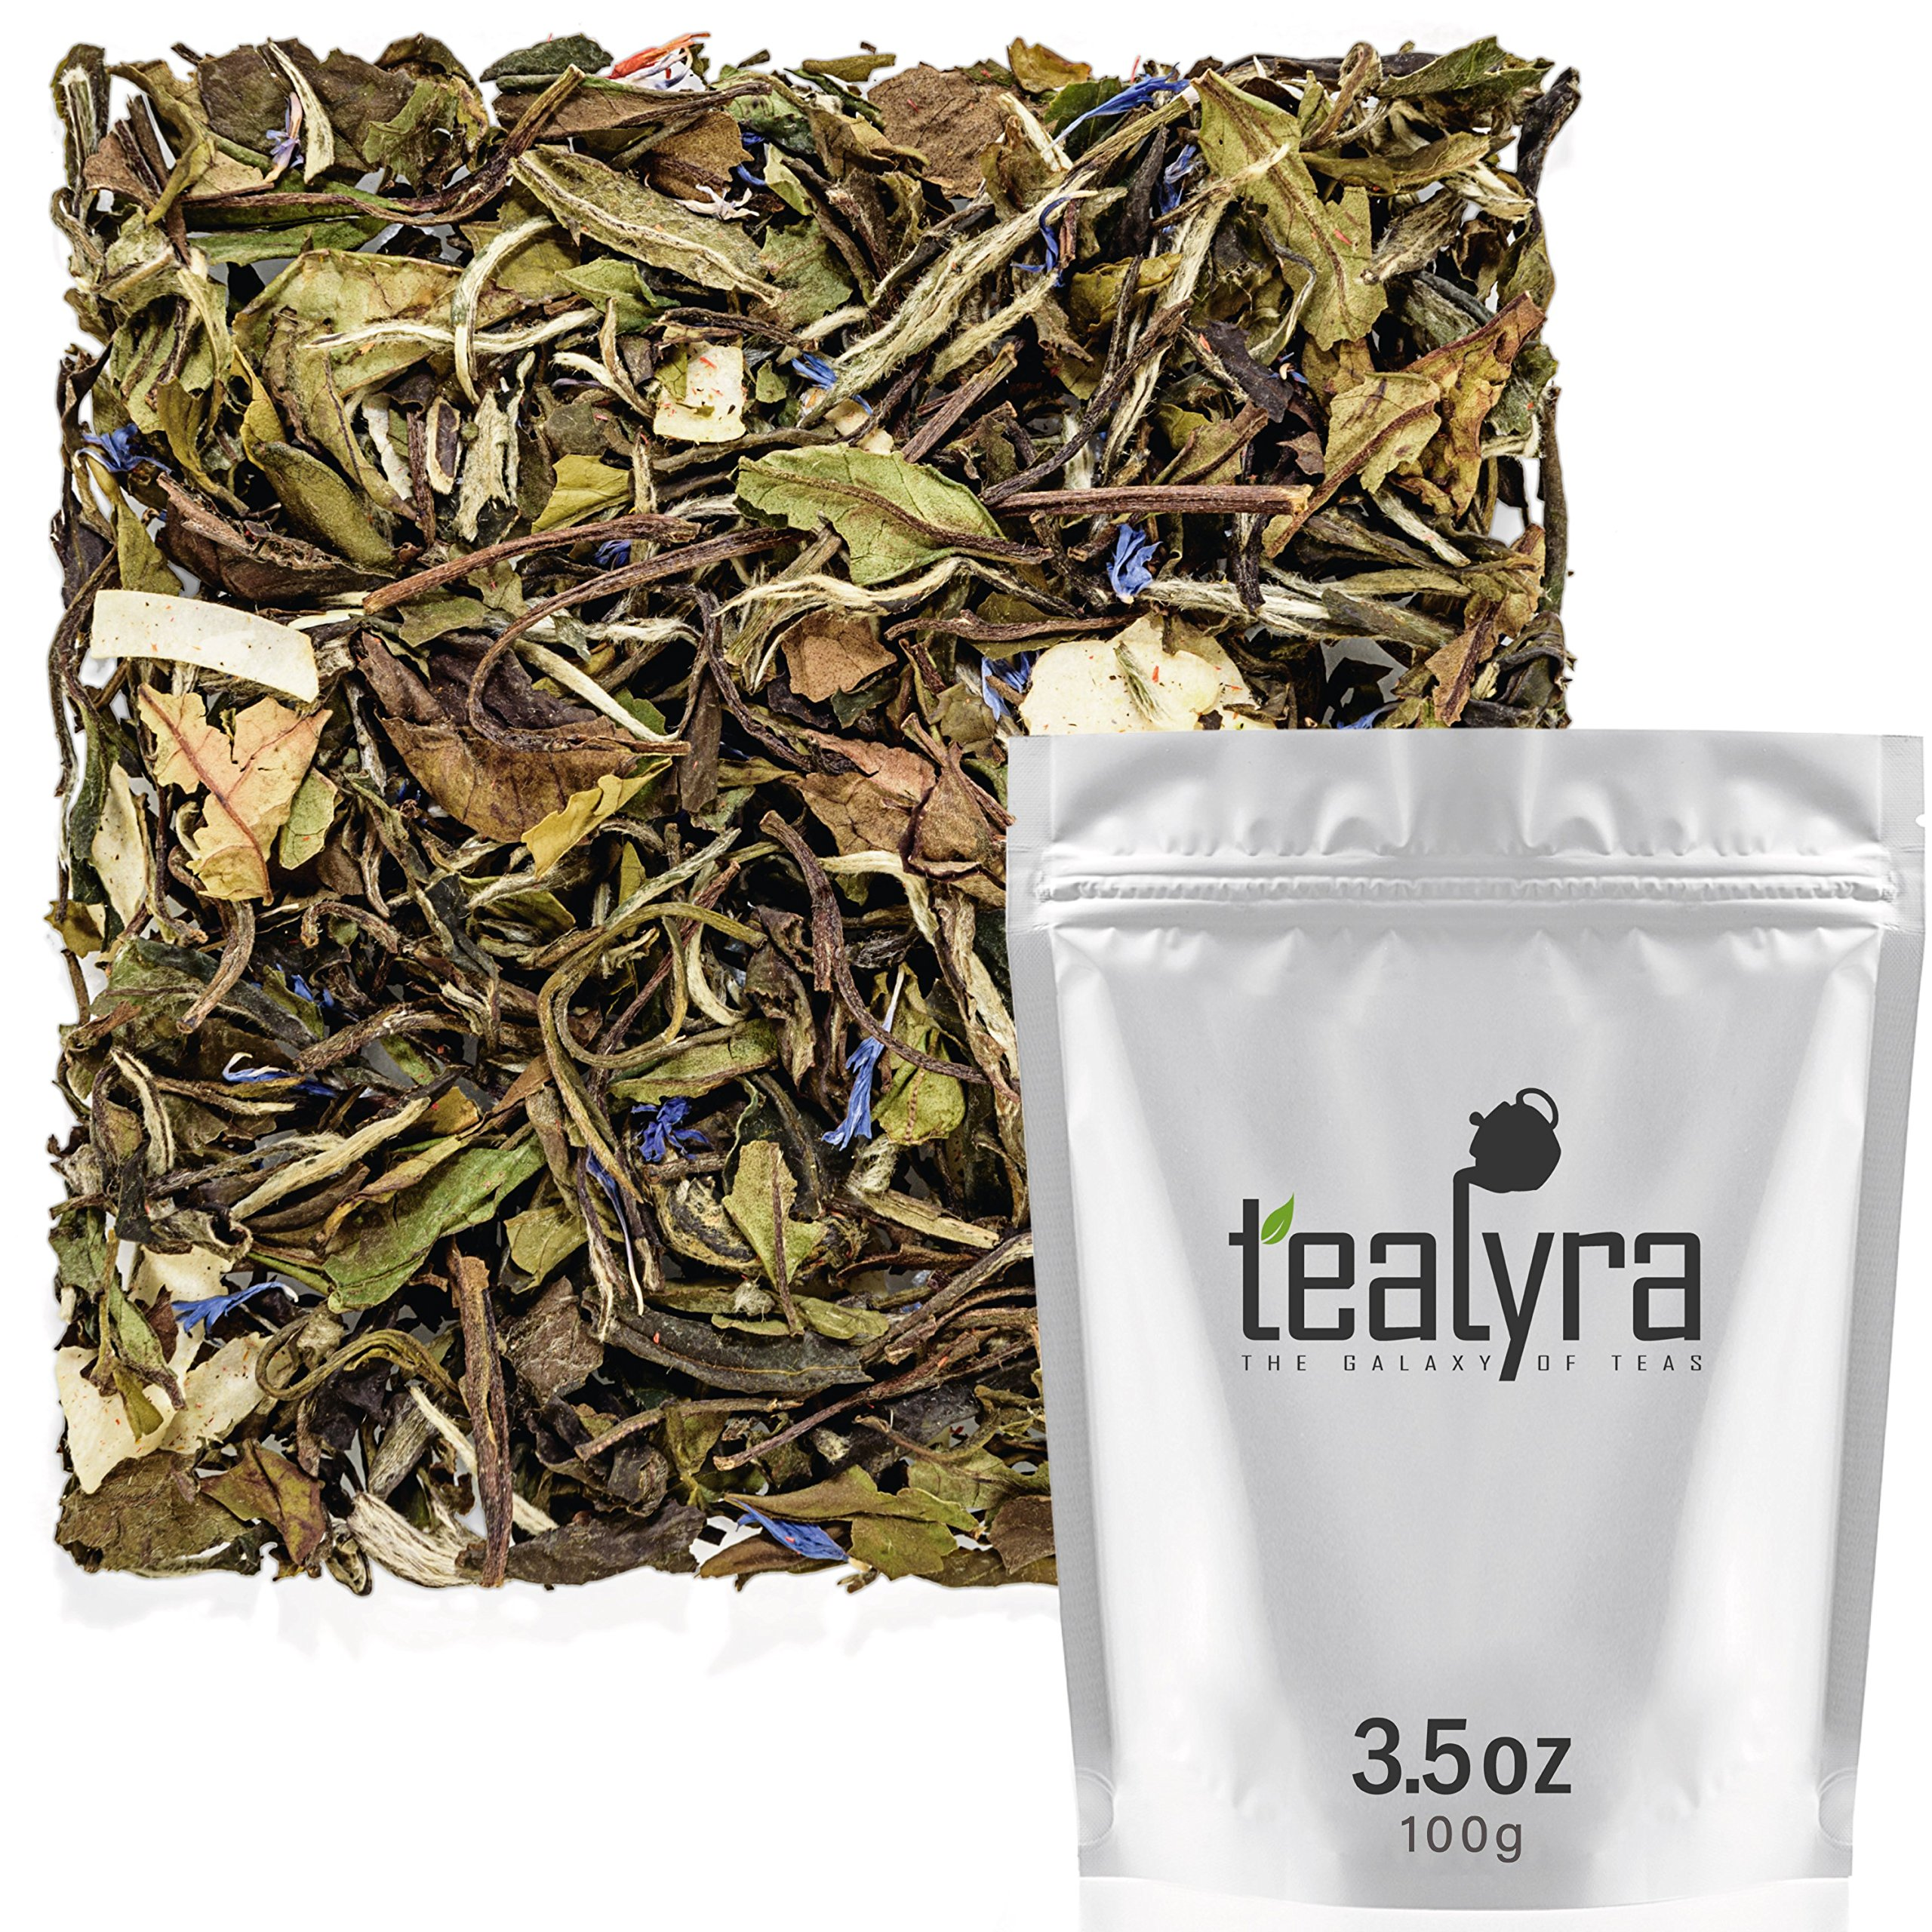 Tealyra - White Coconut Cream - Premium White Tea with Coconut Chips Blend - Loose Leaf Tea - High in Antioxidants - Caffeine Level Low - All Natural Ingredients - 100g (3.5-ounce) by Tealyra